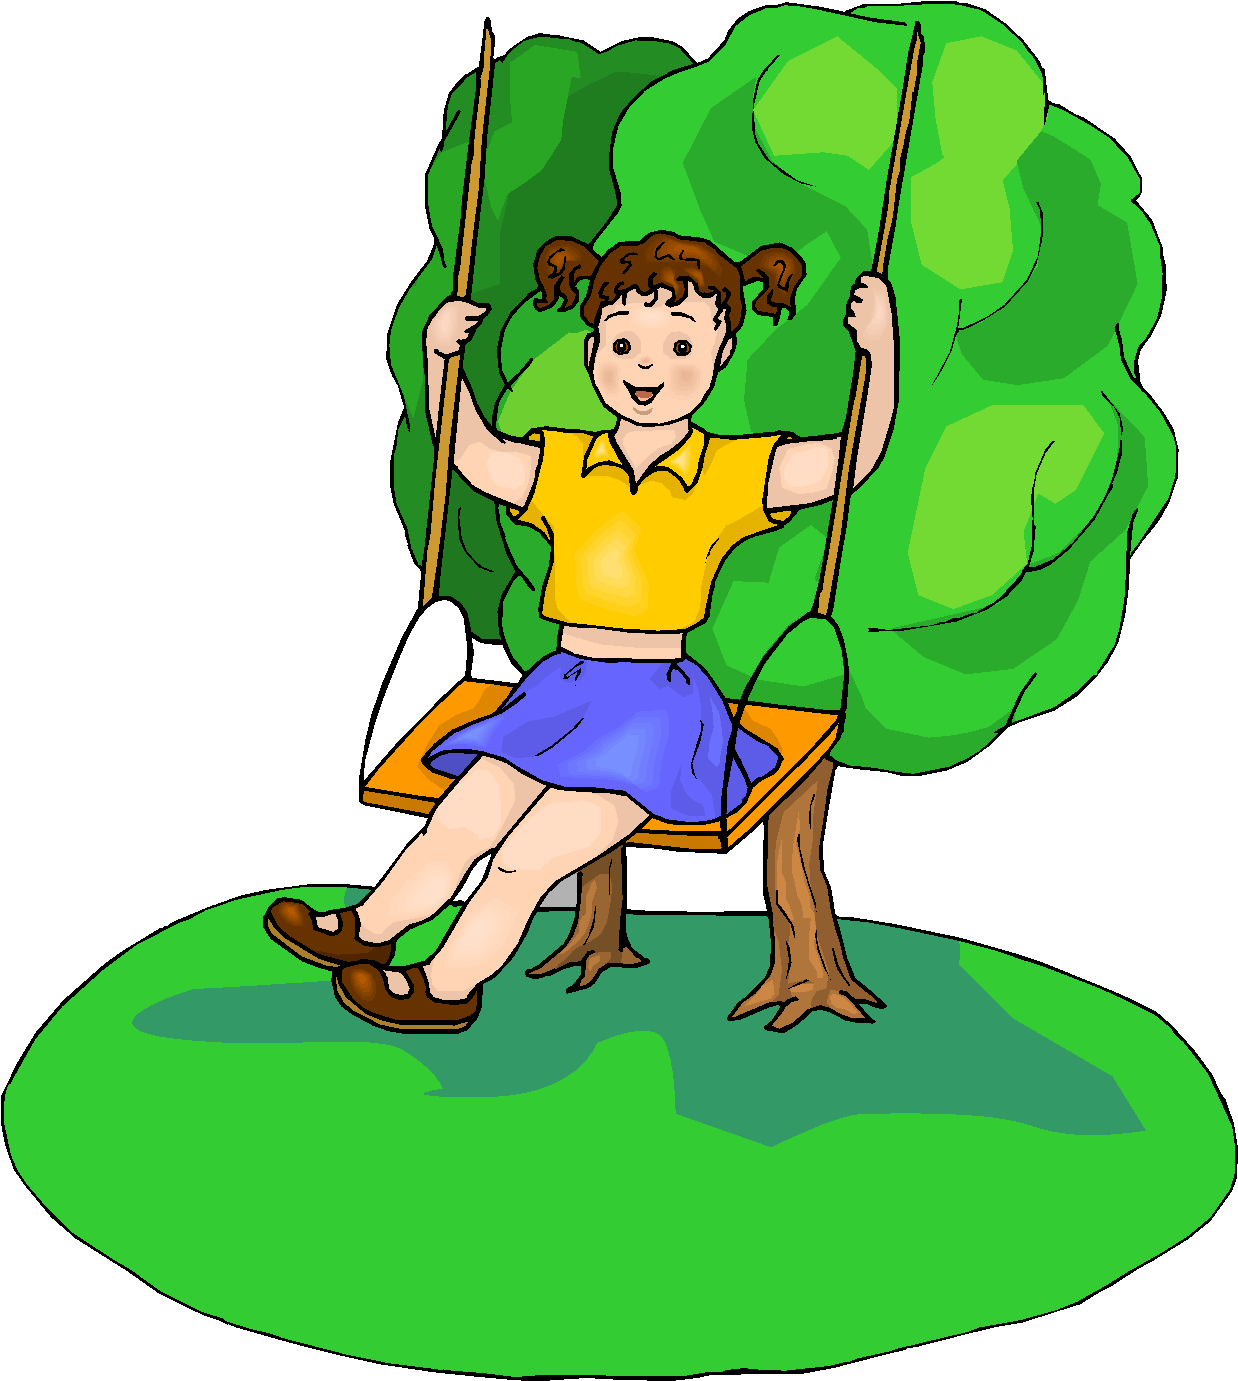 Girl Play Swings Free Clipart | Free Microsoft Clipart